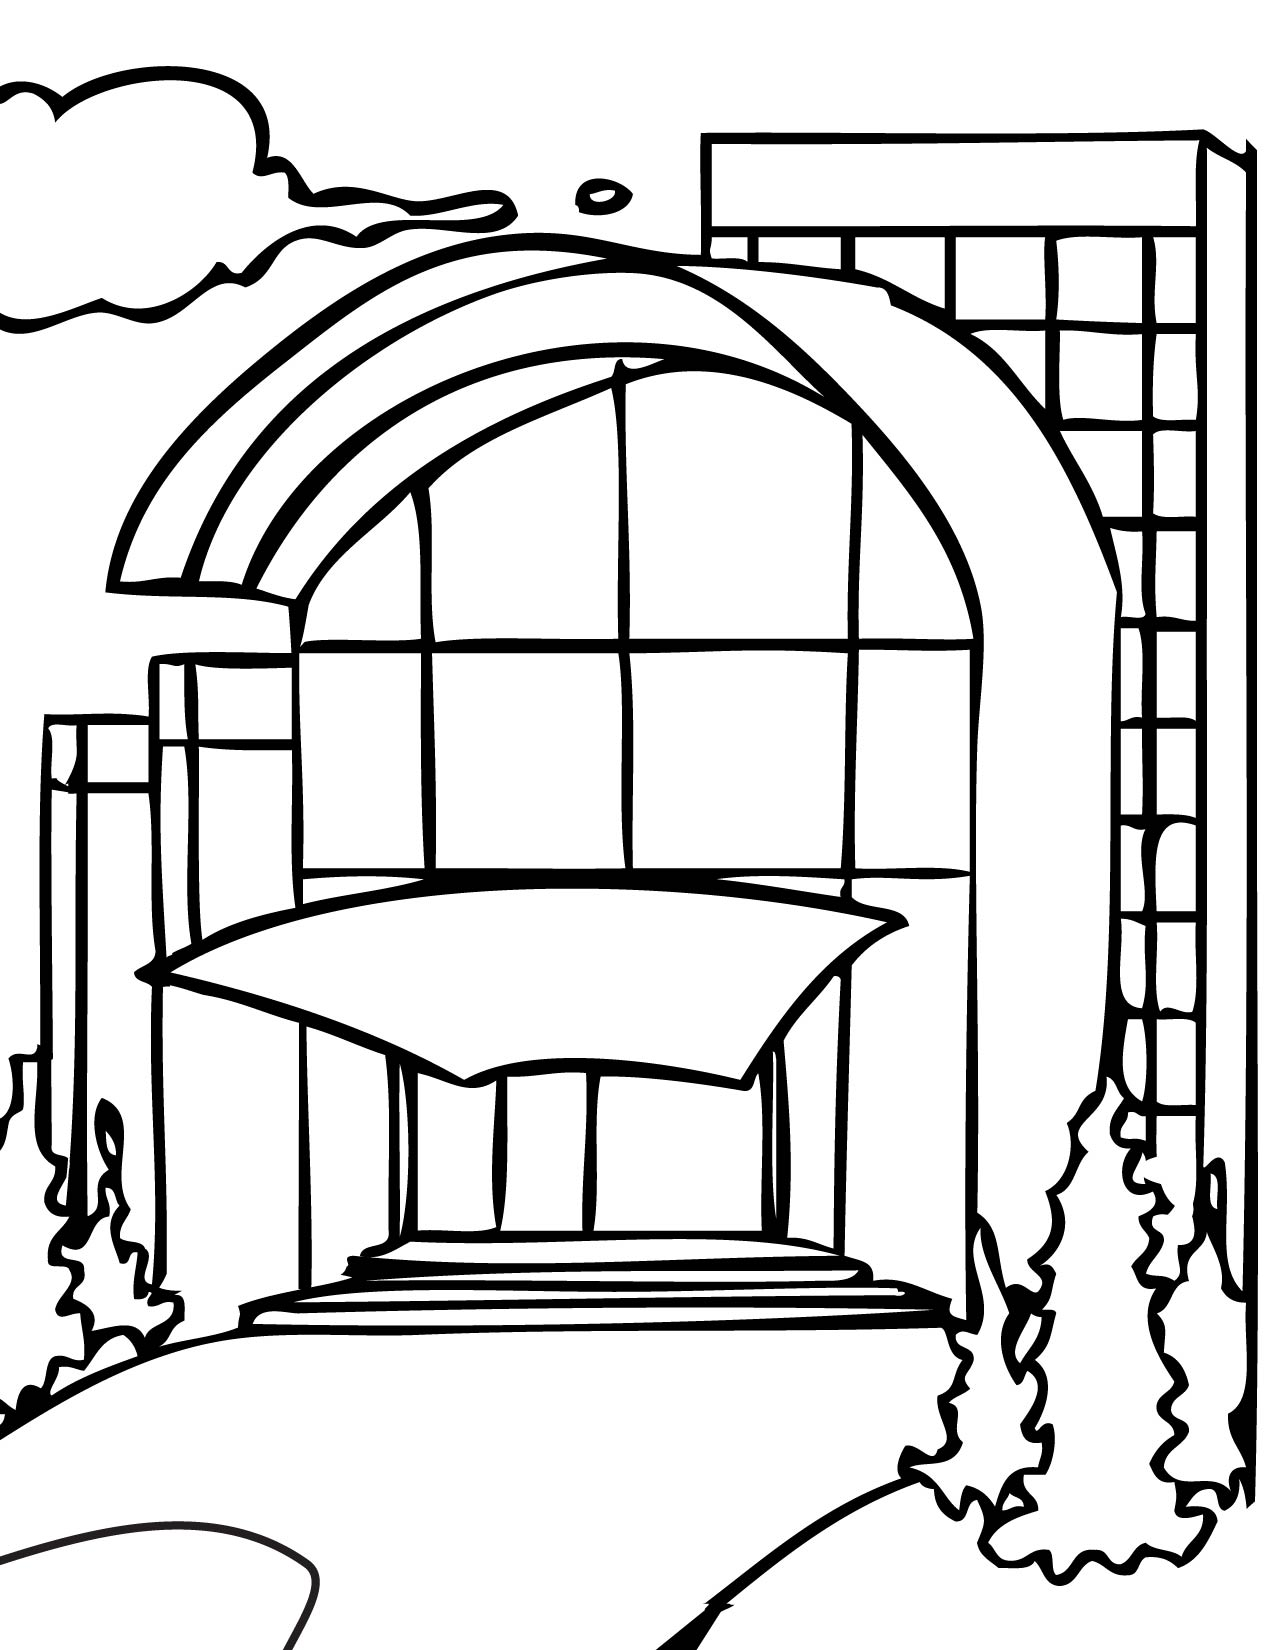 mall coloring pages - photo#6